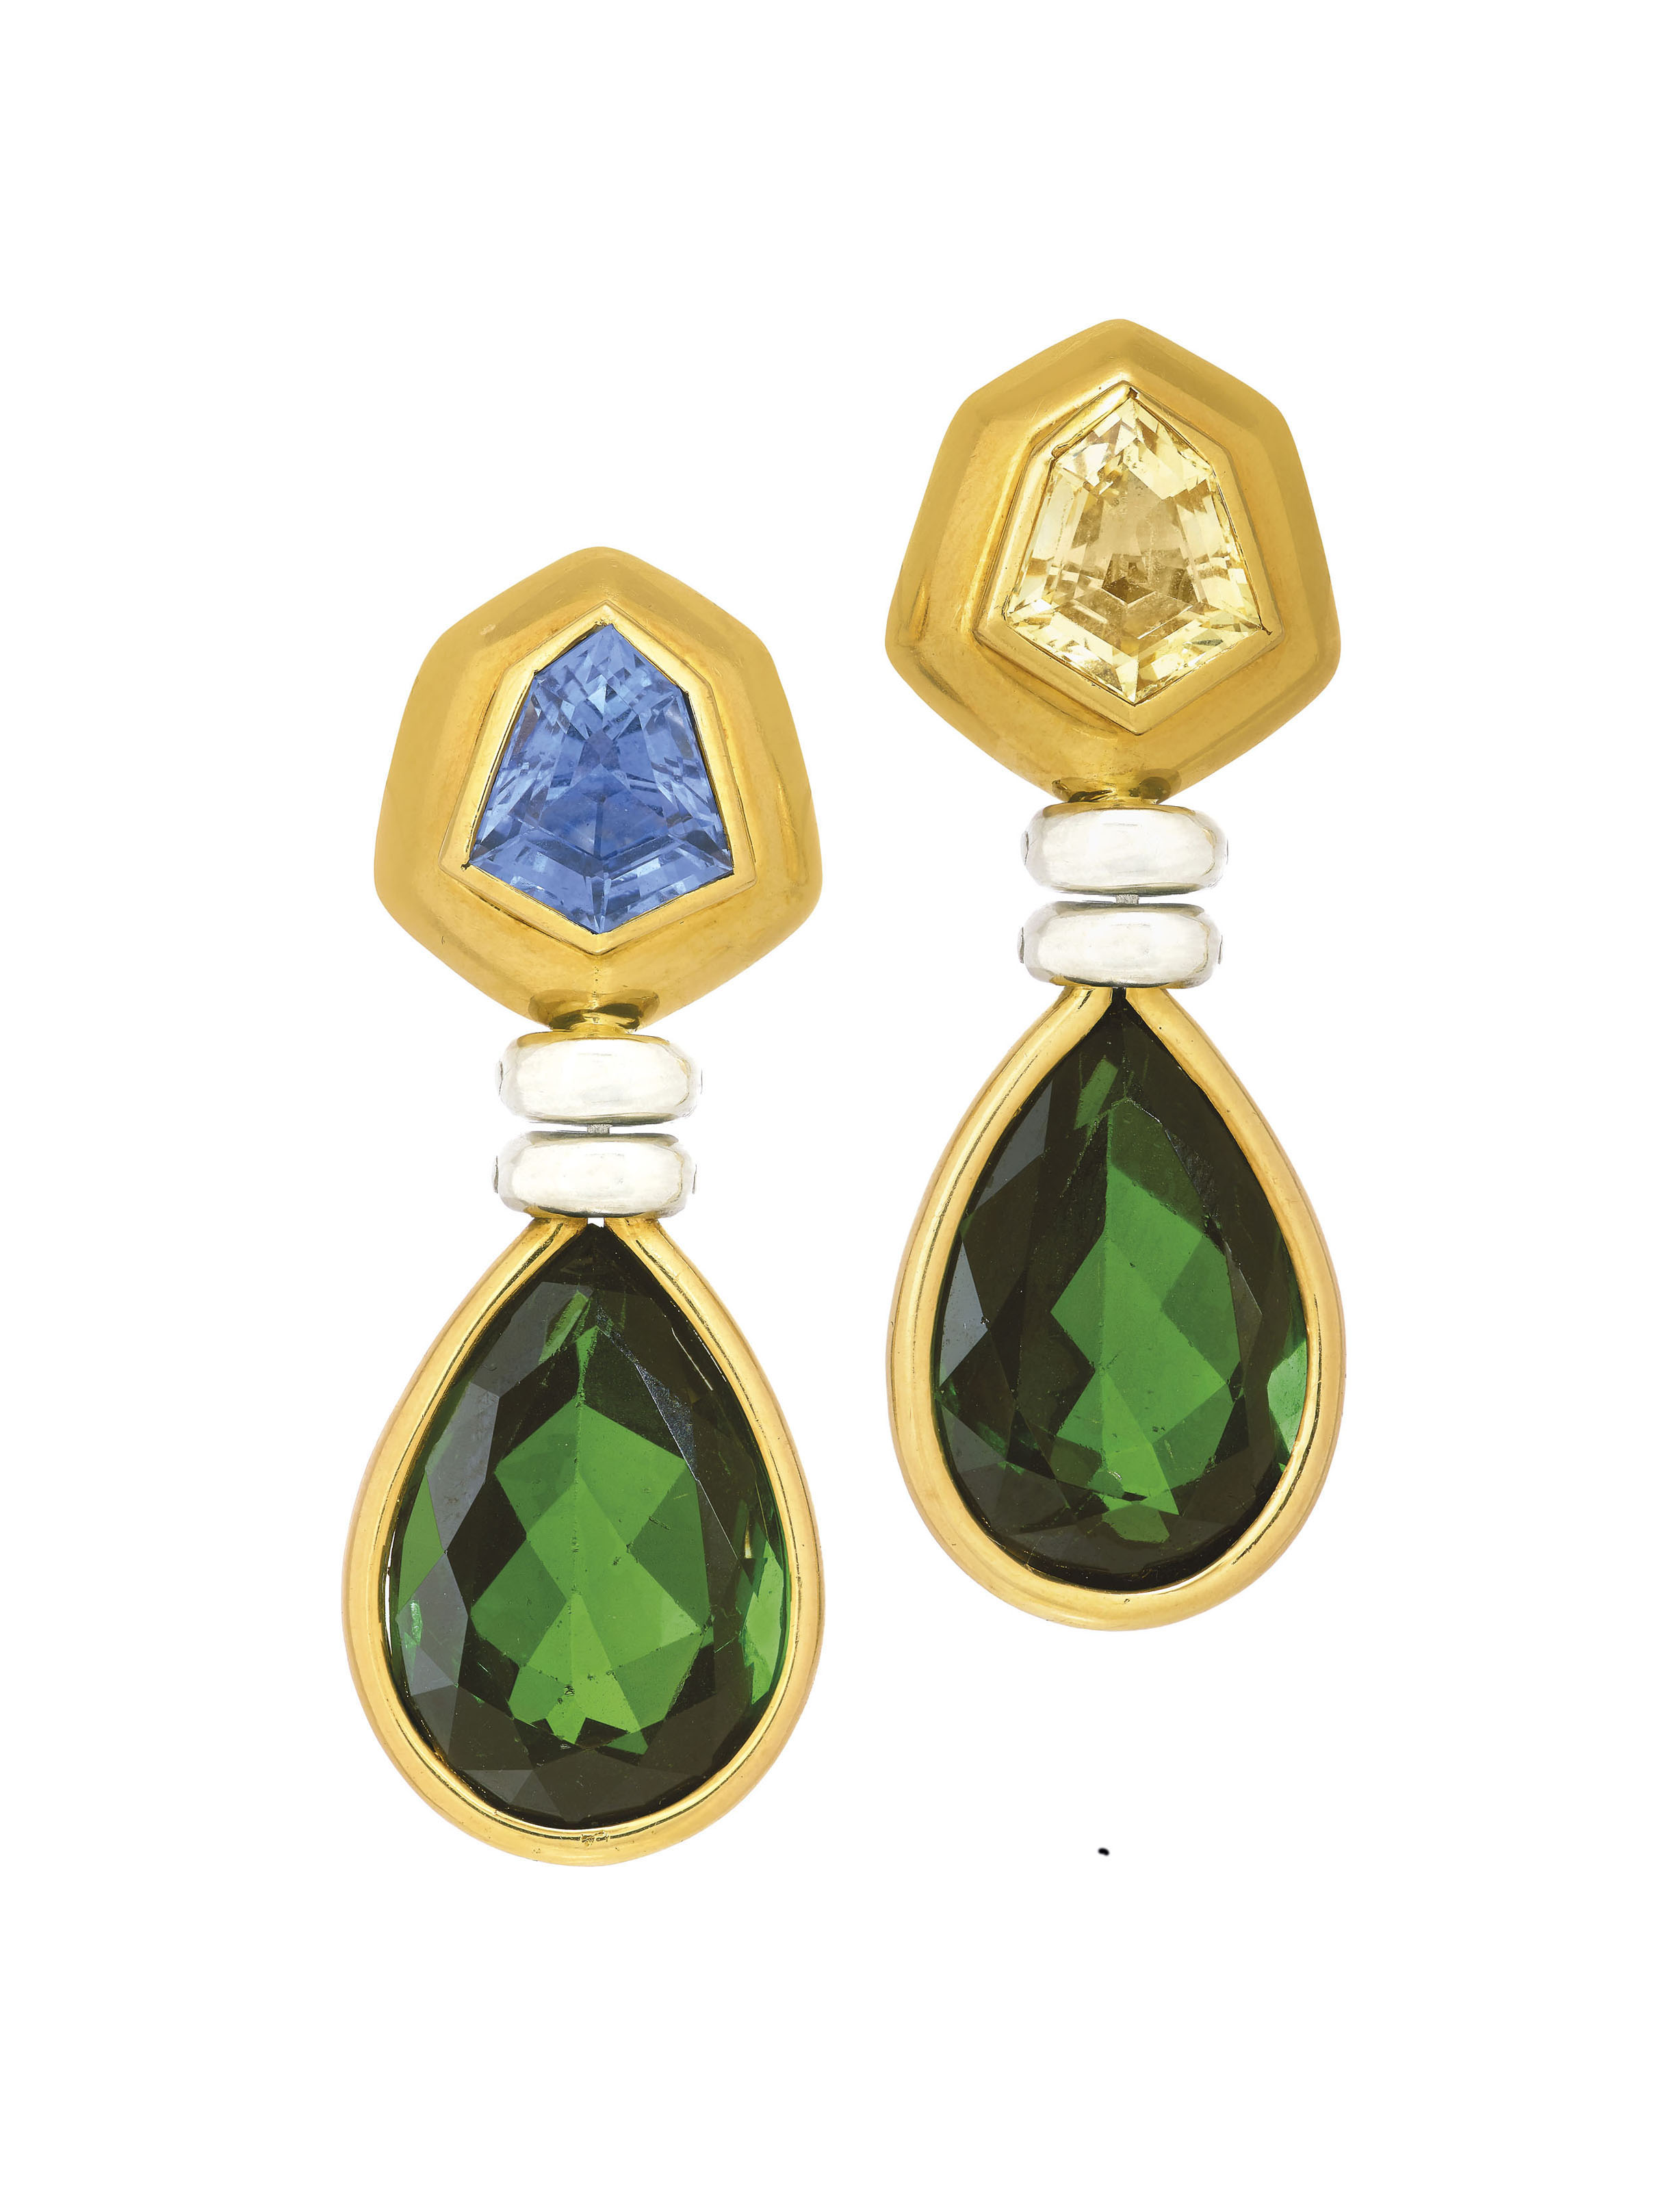 TOURMALINE AND SAPPHIRE EARRINGS, POIRAY